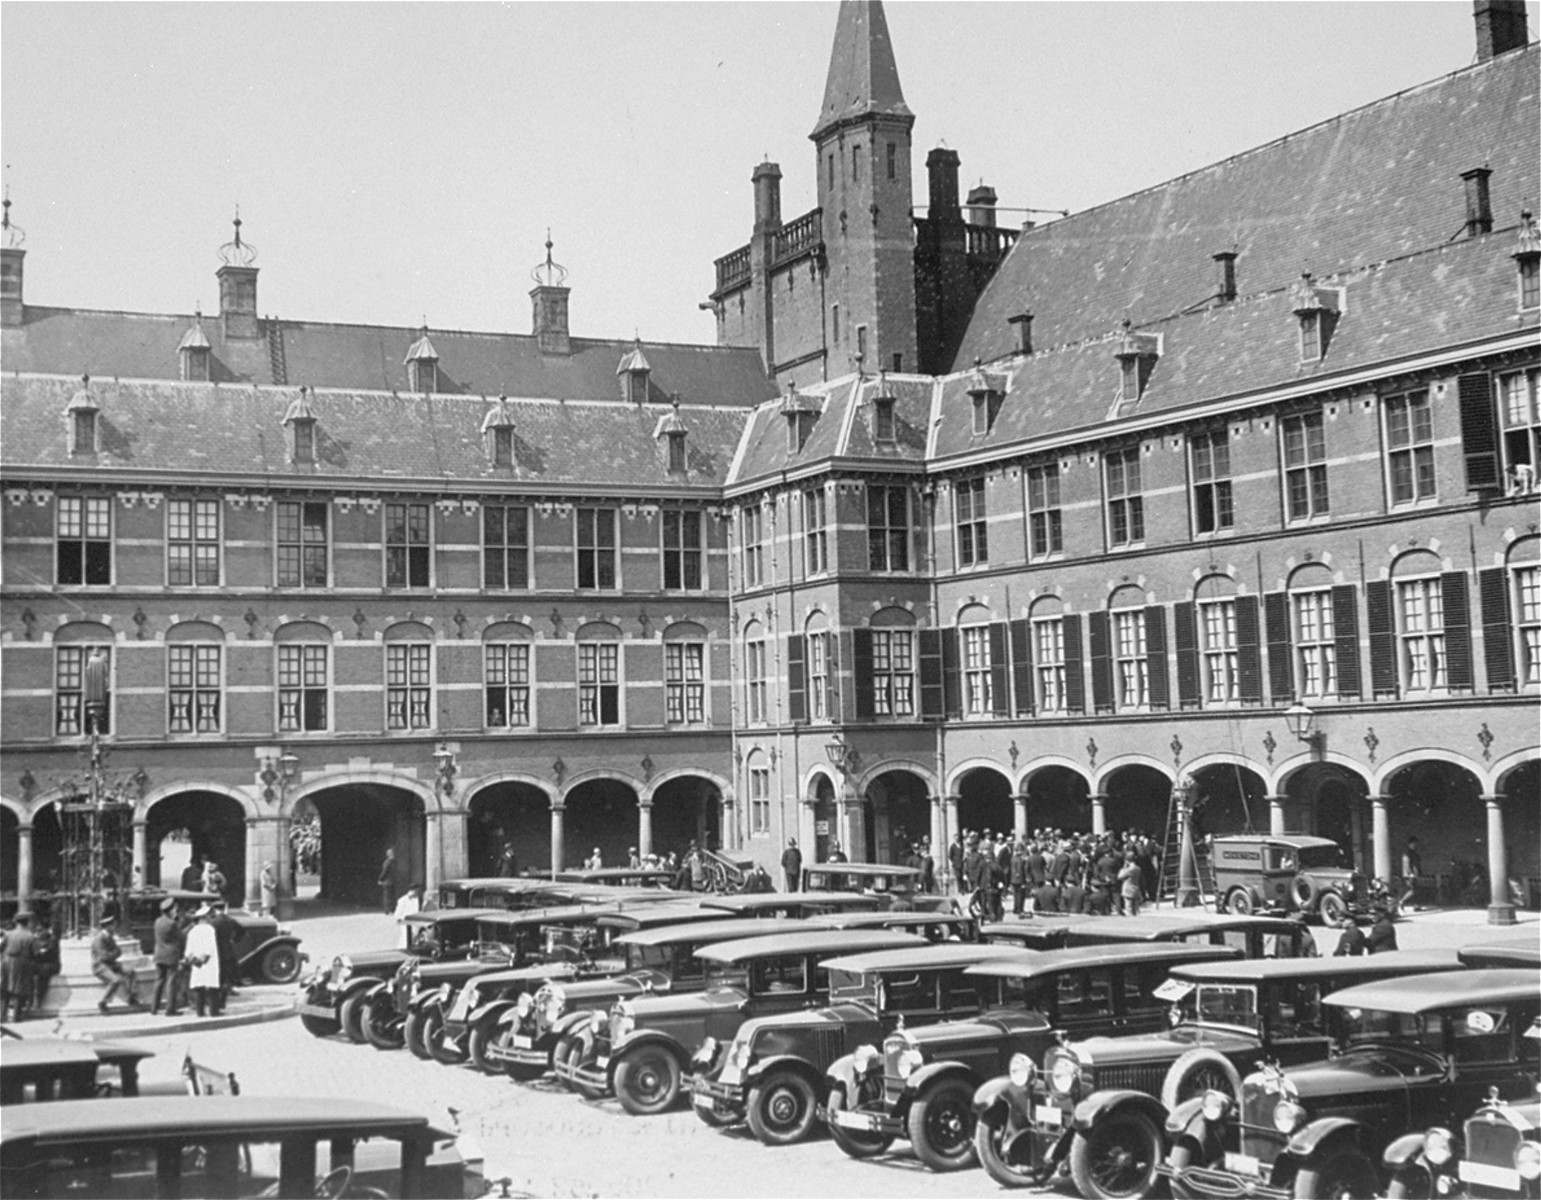 Exterior view of the palace at the Hague, Netherlands.